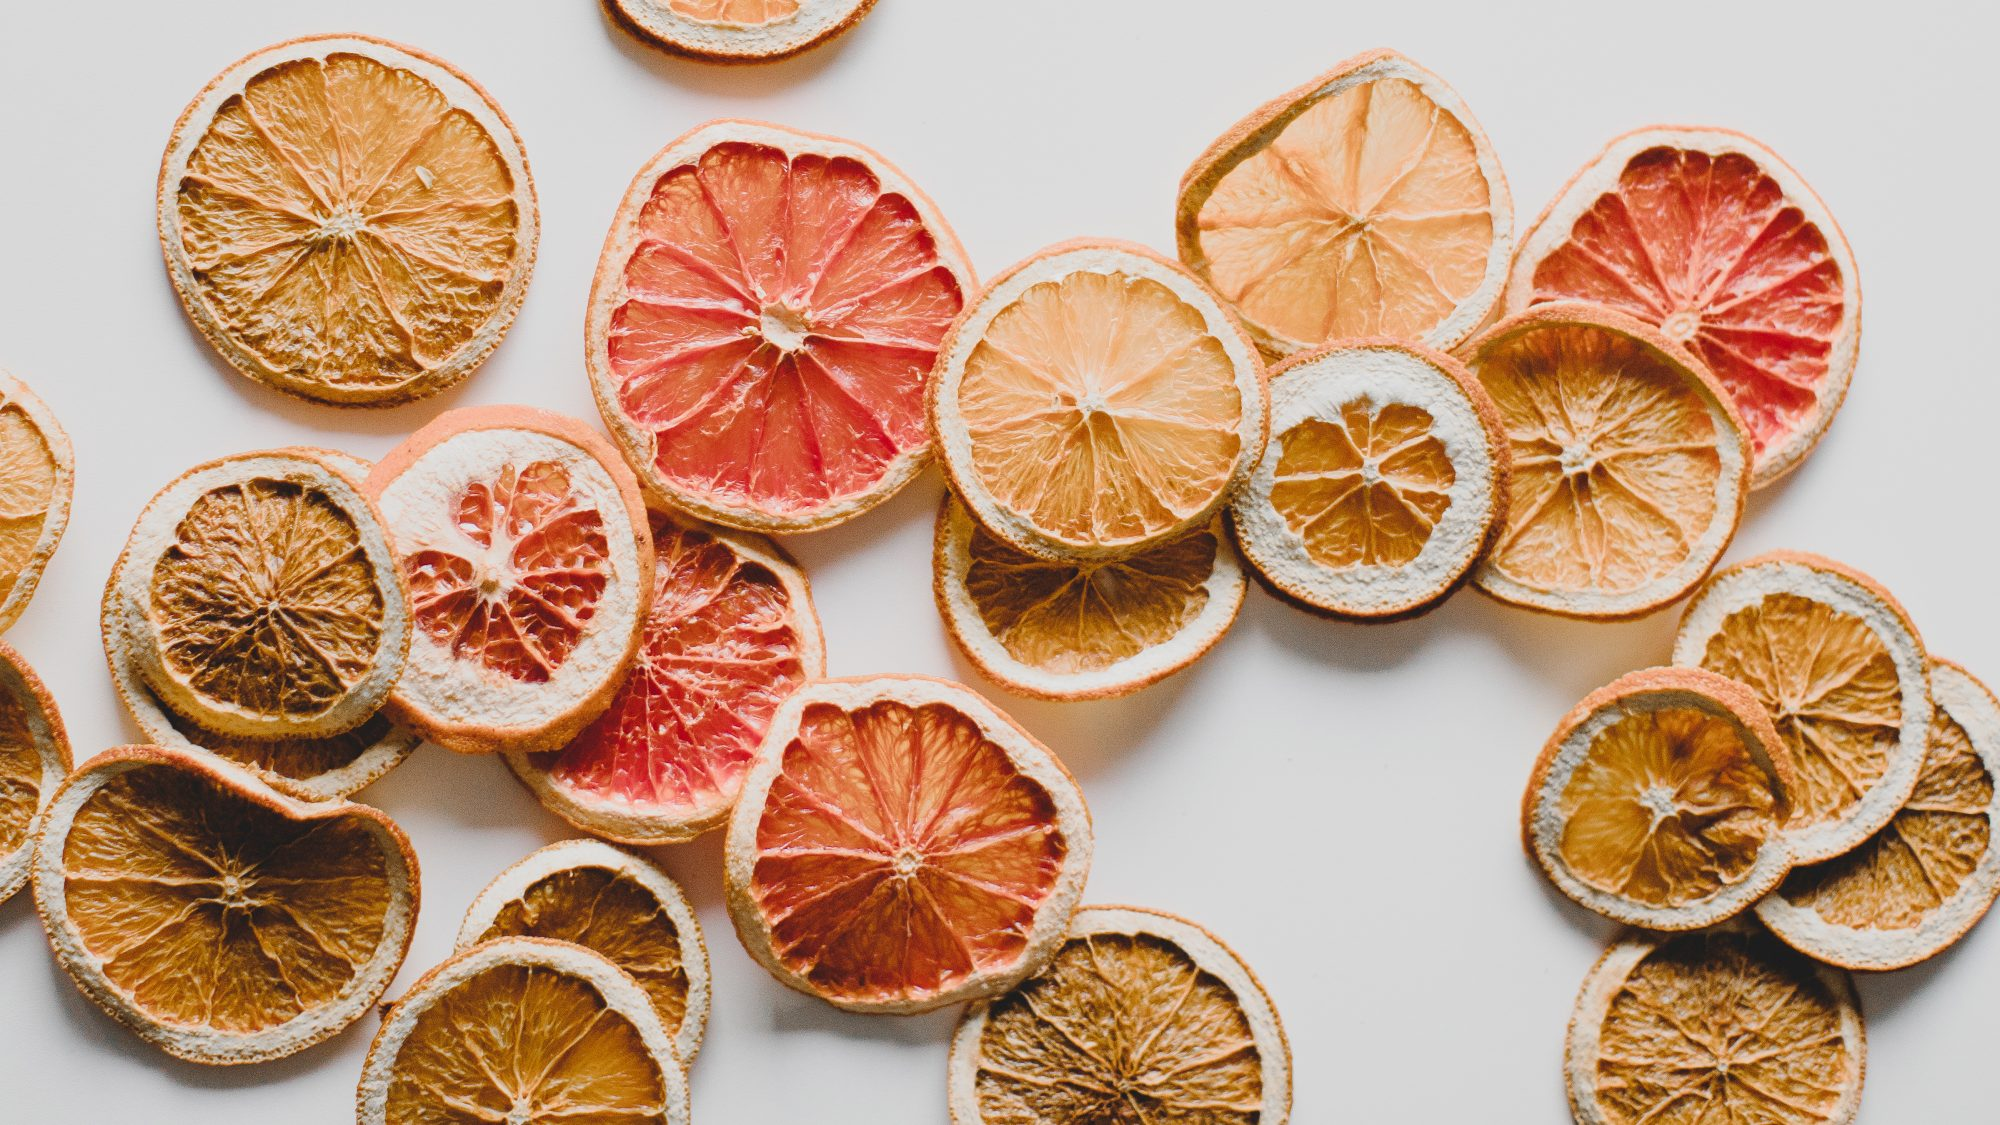 is-dried-fruit-healthy: dried citrus